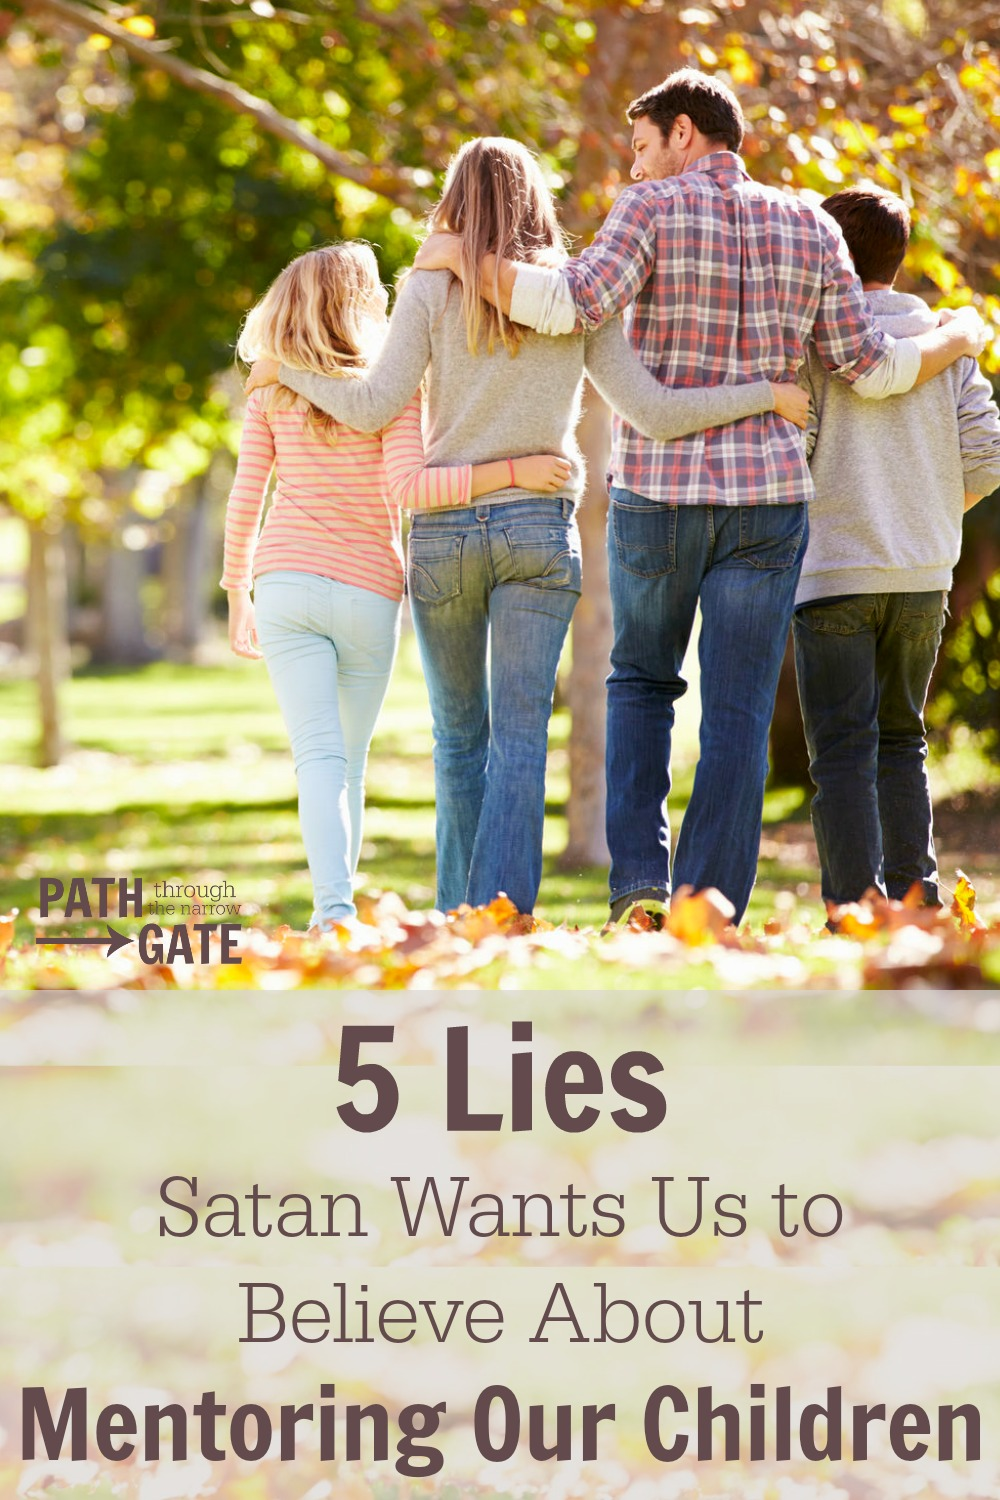 Are we ready to take up the important, uncomfortable, time-consuming task of mentoring our children? Or will we believe Satan's lies and fail in mentoring our children?